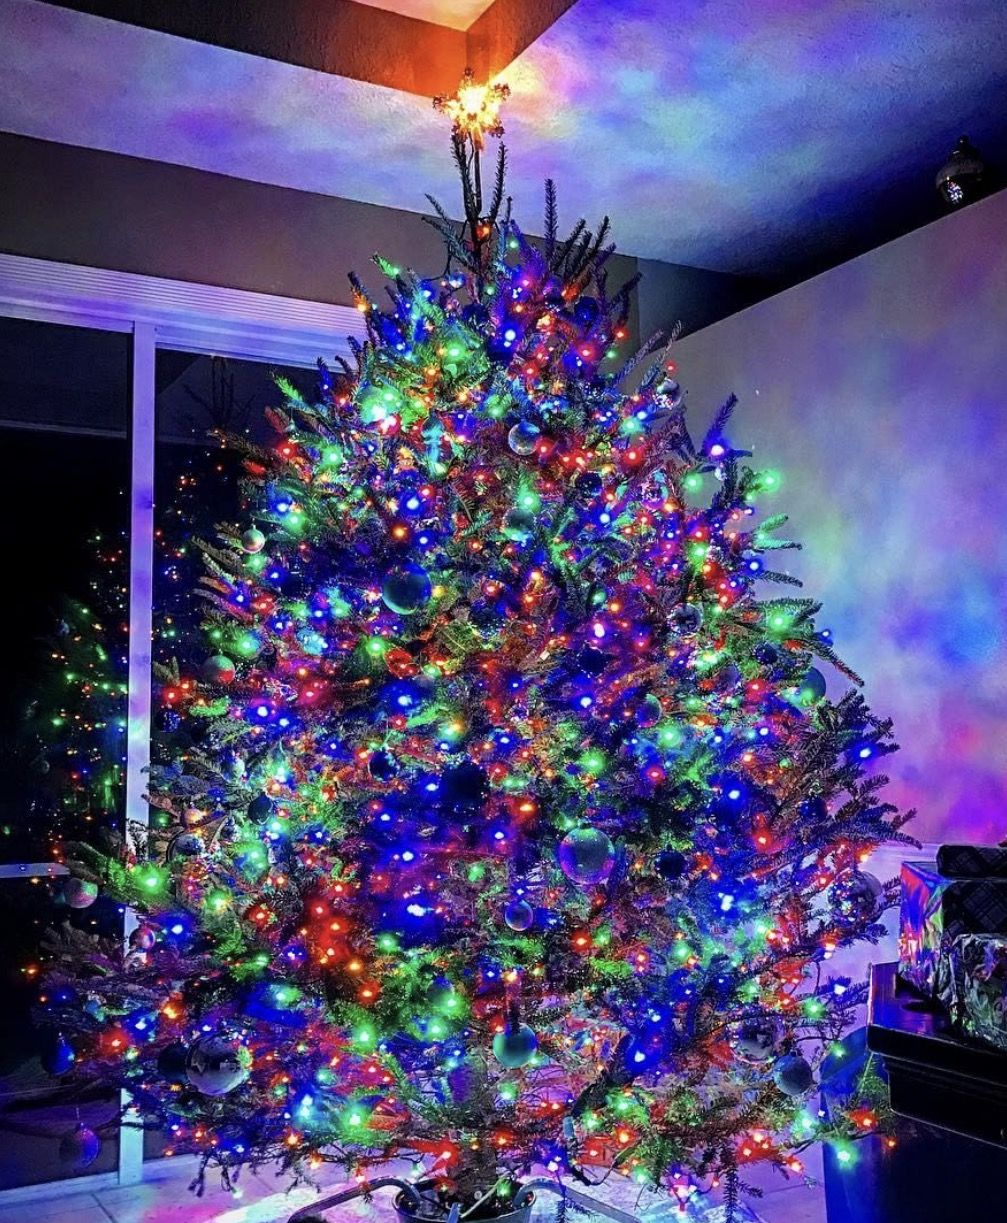 How To String Lights On A Christmas Tree Adorable 70 Bulb 5Mm Led String Mini Lights  Multicolor  Live Christmas Decorating Inspiration